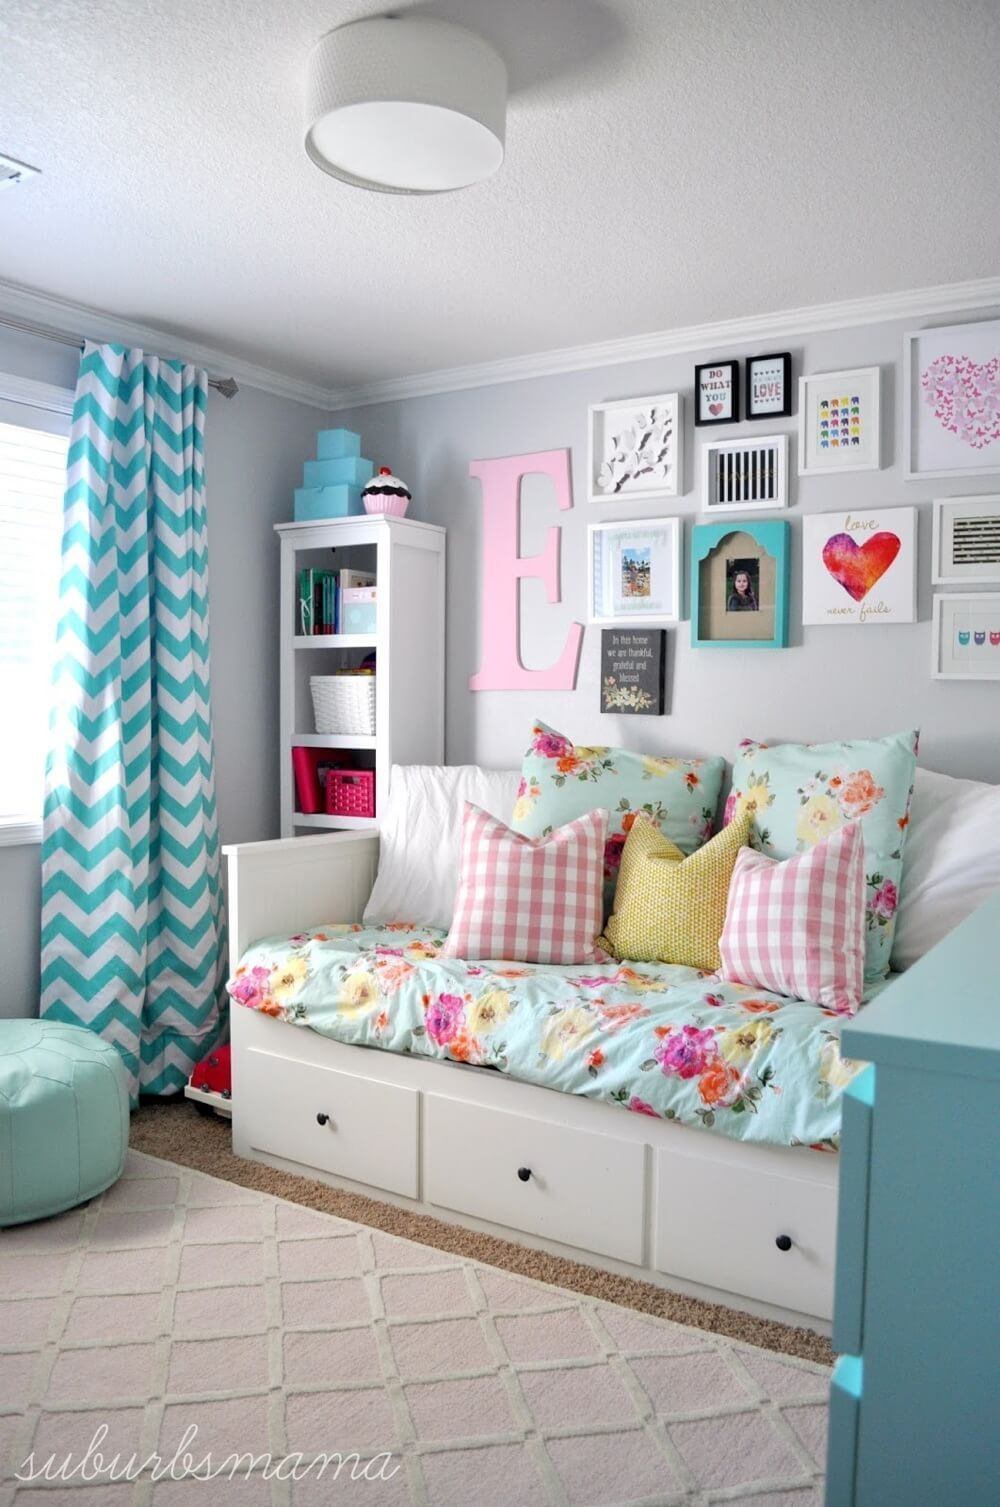 Teenage Girl Bedroom Ideas For A Teenage Girl Or Girls May Be A Little Tricky Because She Girl Bedroom Decor Girl Bedroom Designs Teenage Girl Bedroom Designs